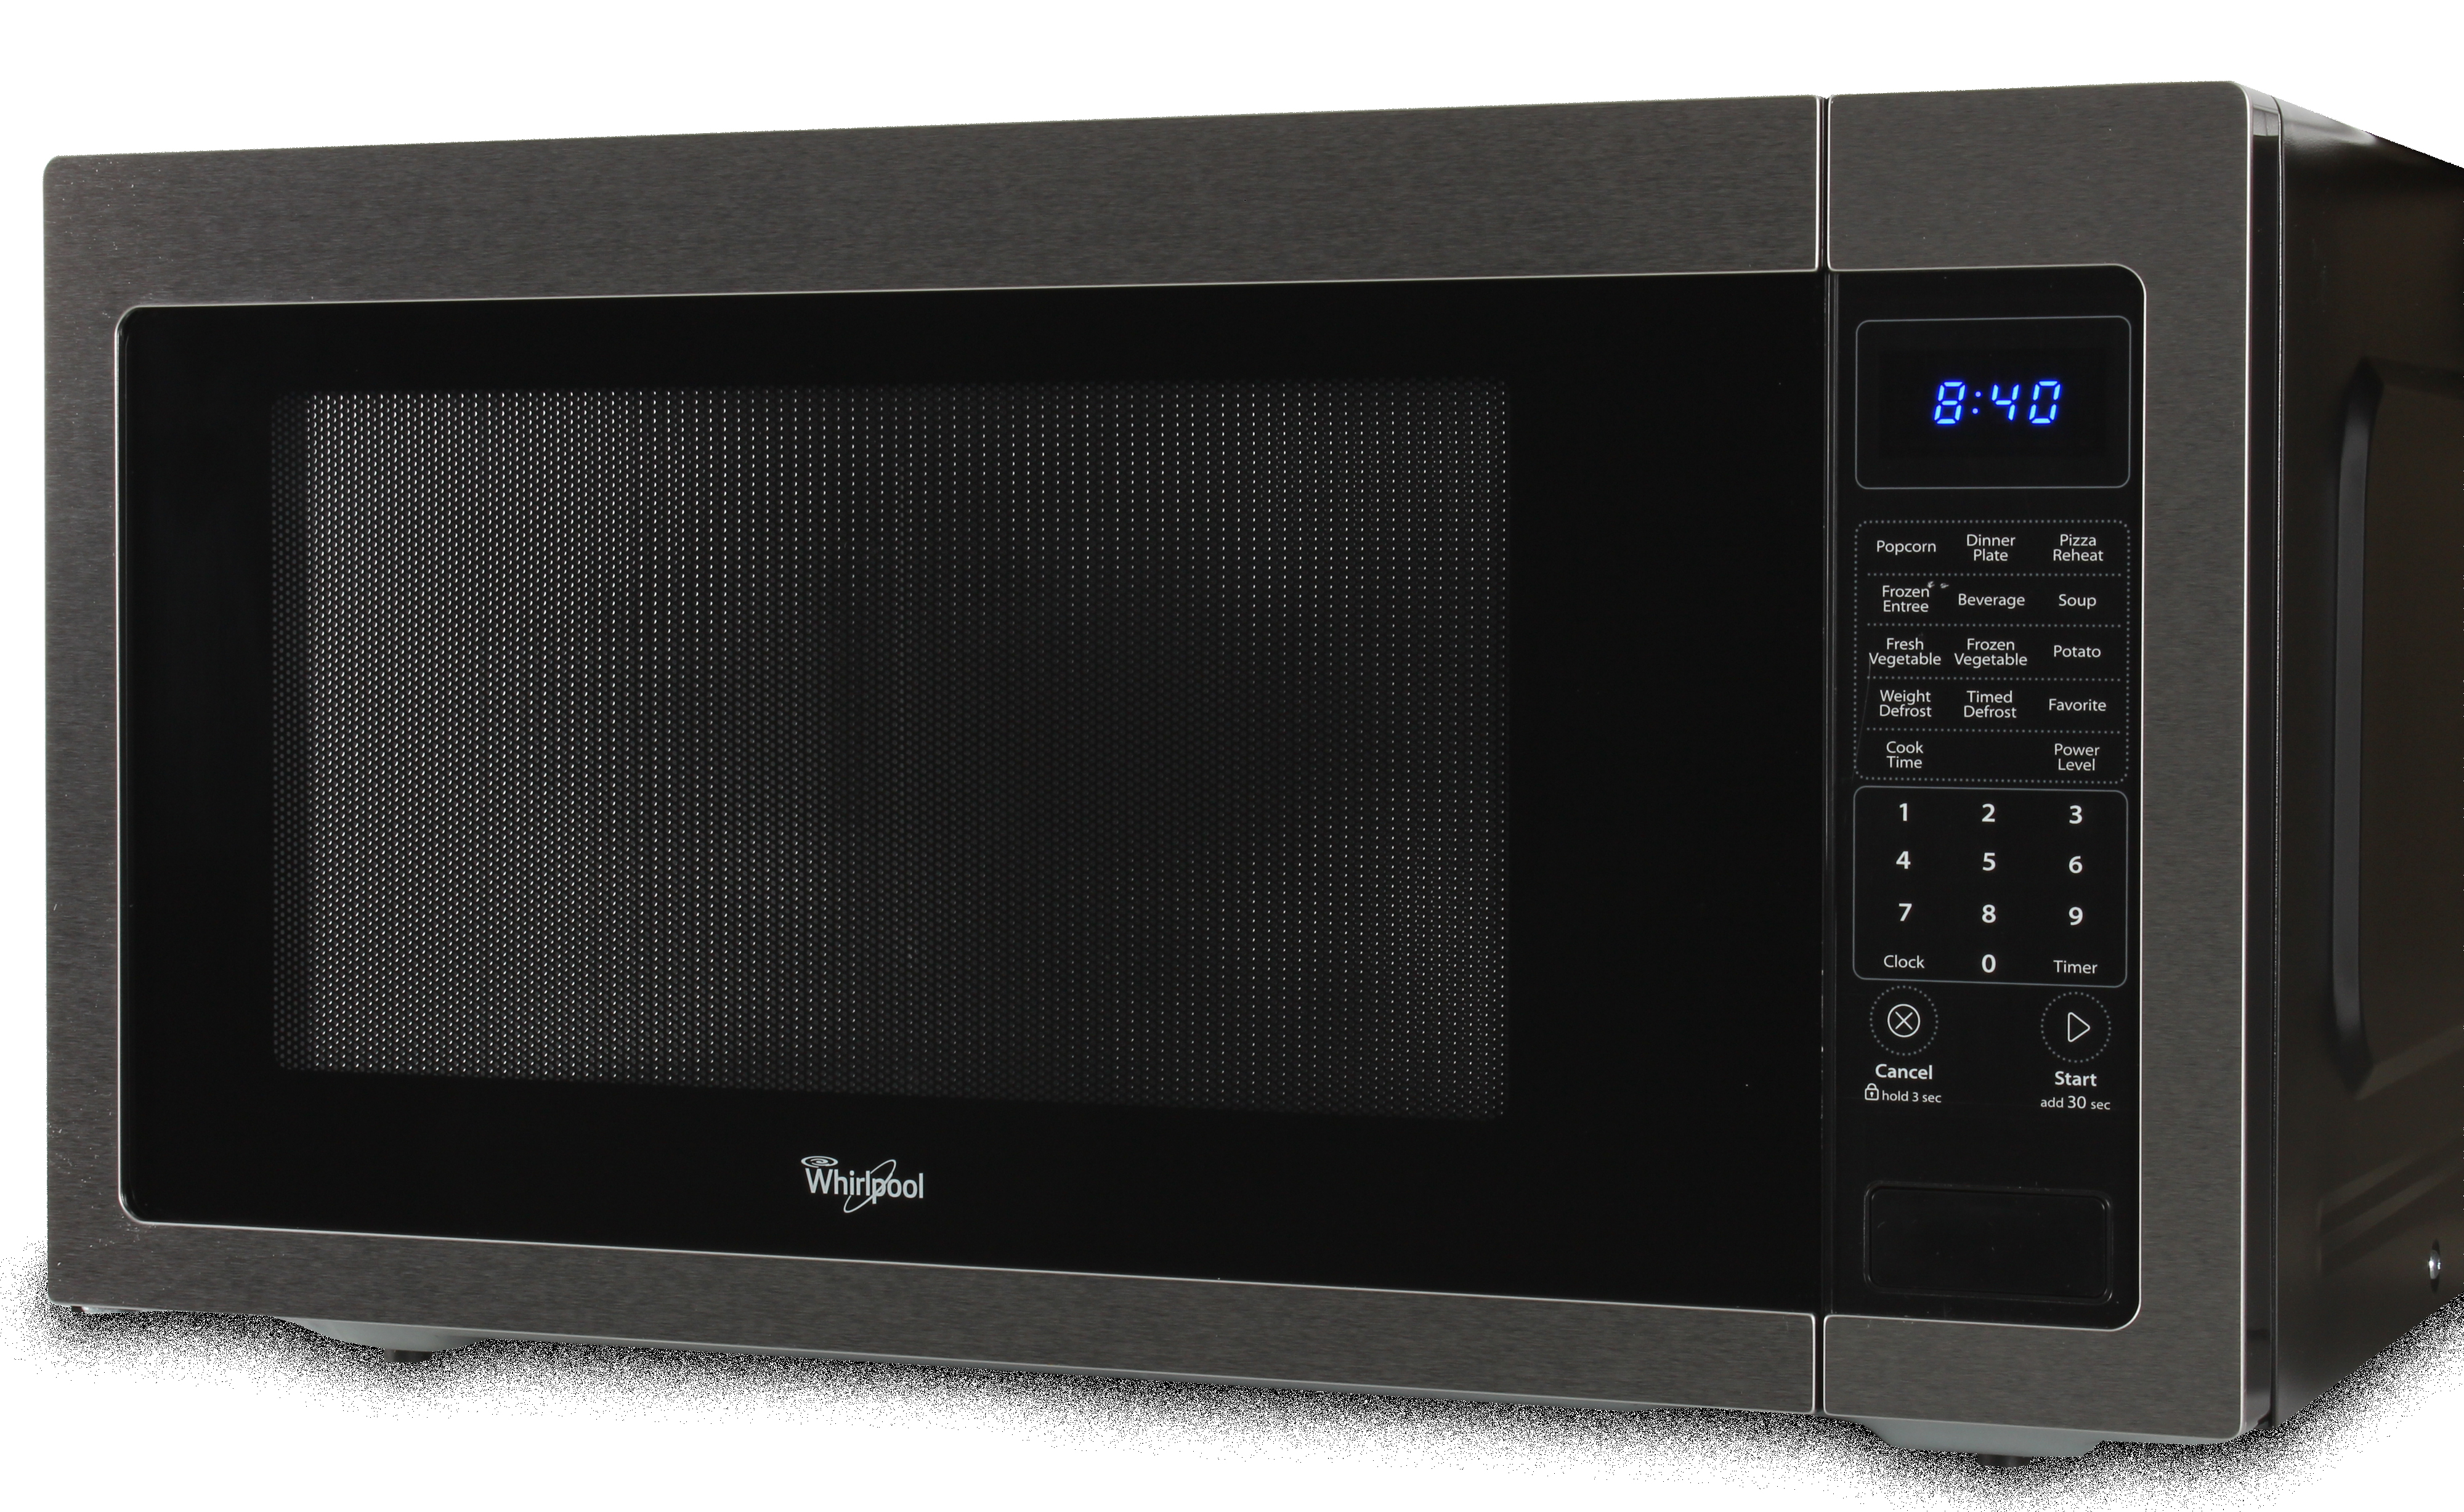 Countertop Microwave Reviews : ... WMC50522AS Countertop Microwave Review - Reviewed.com Microwaves